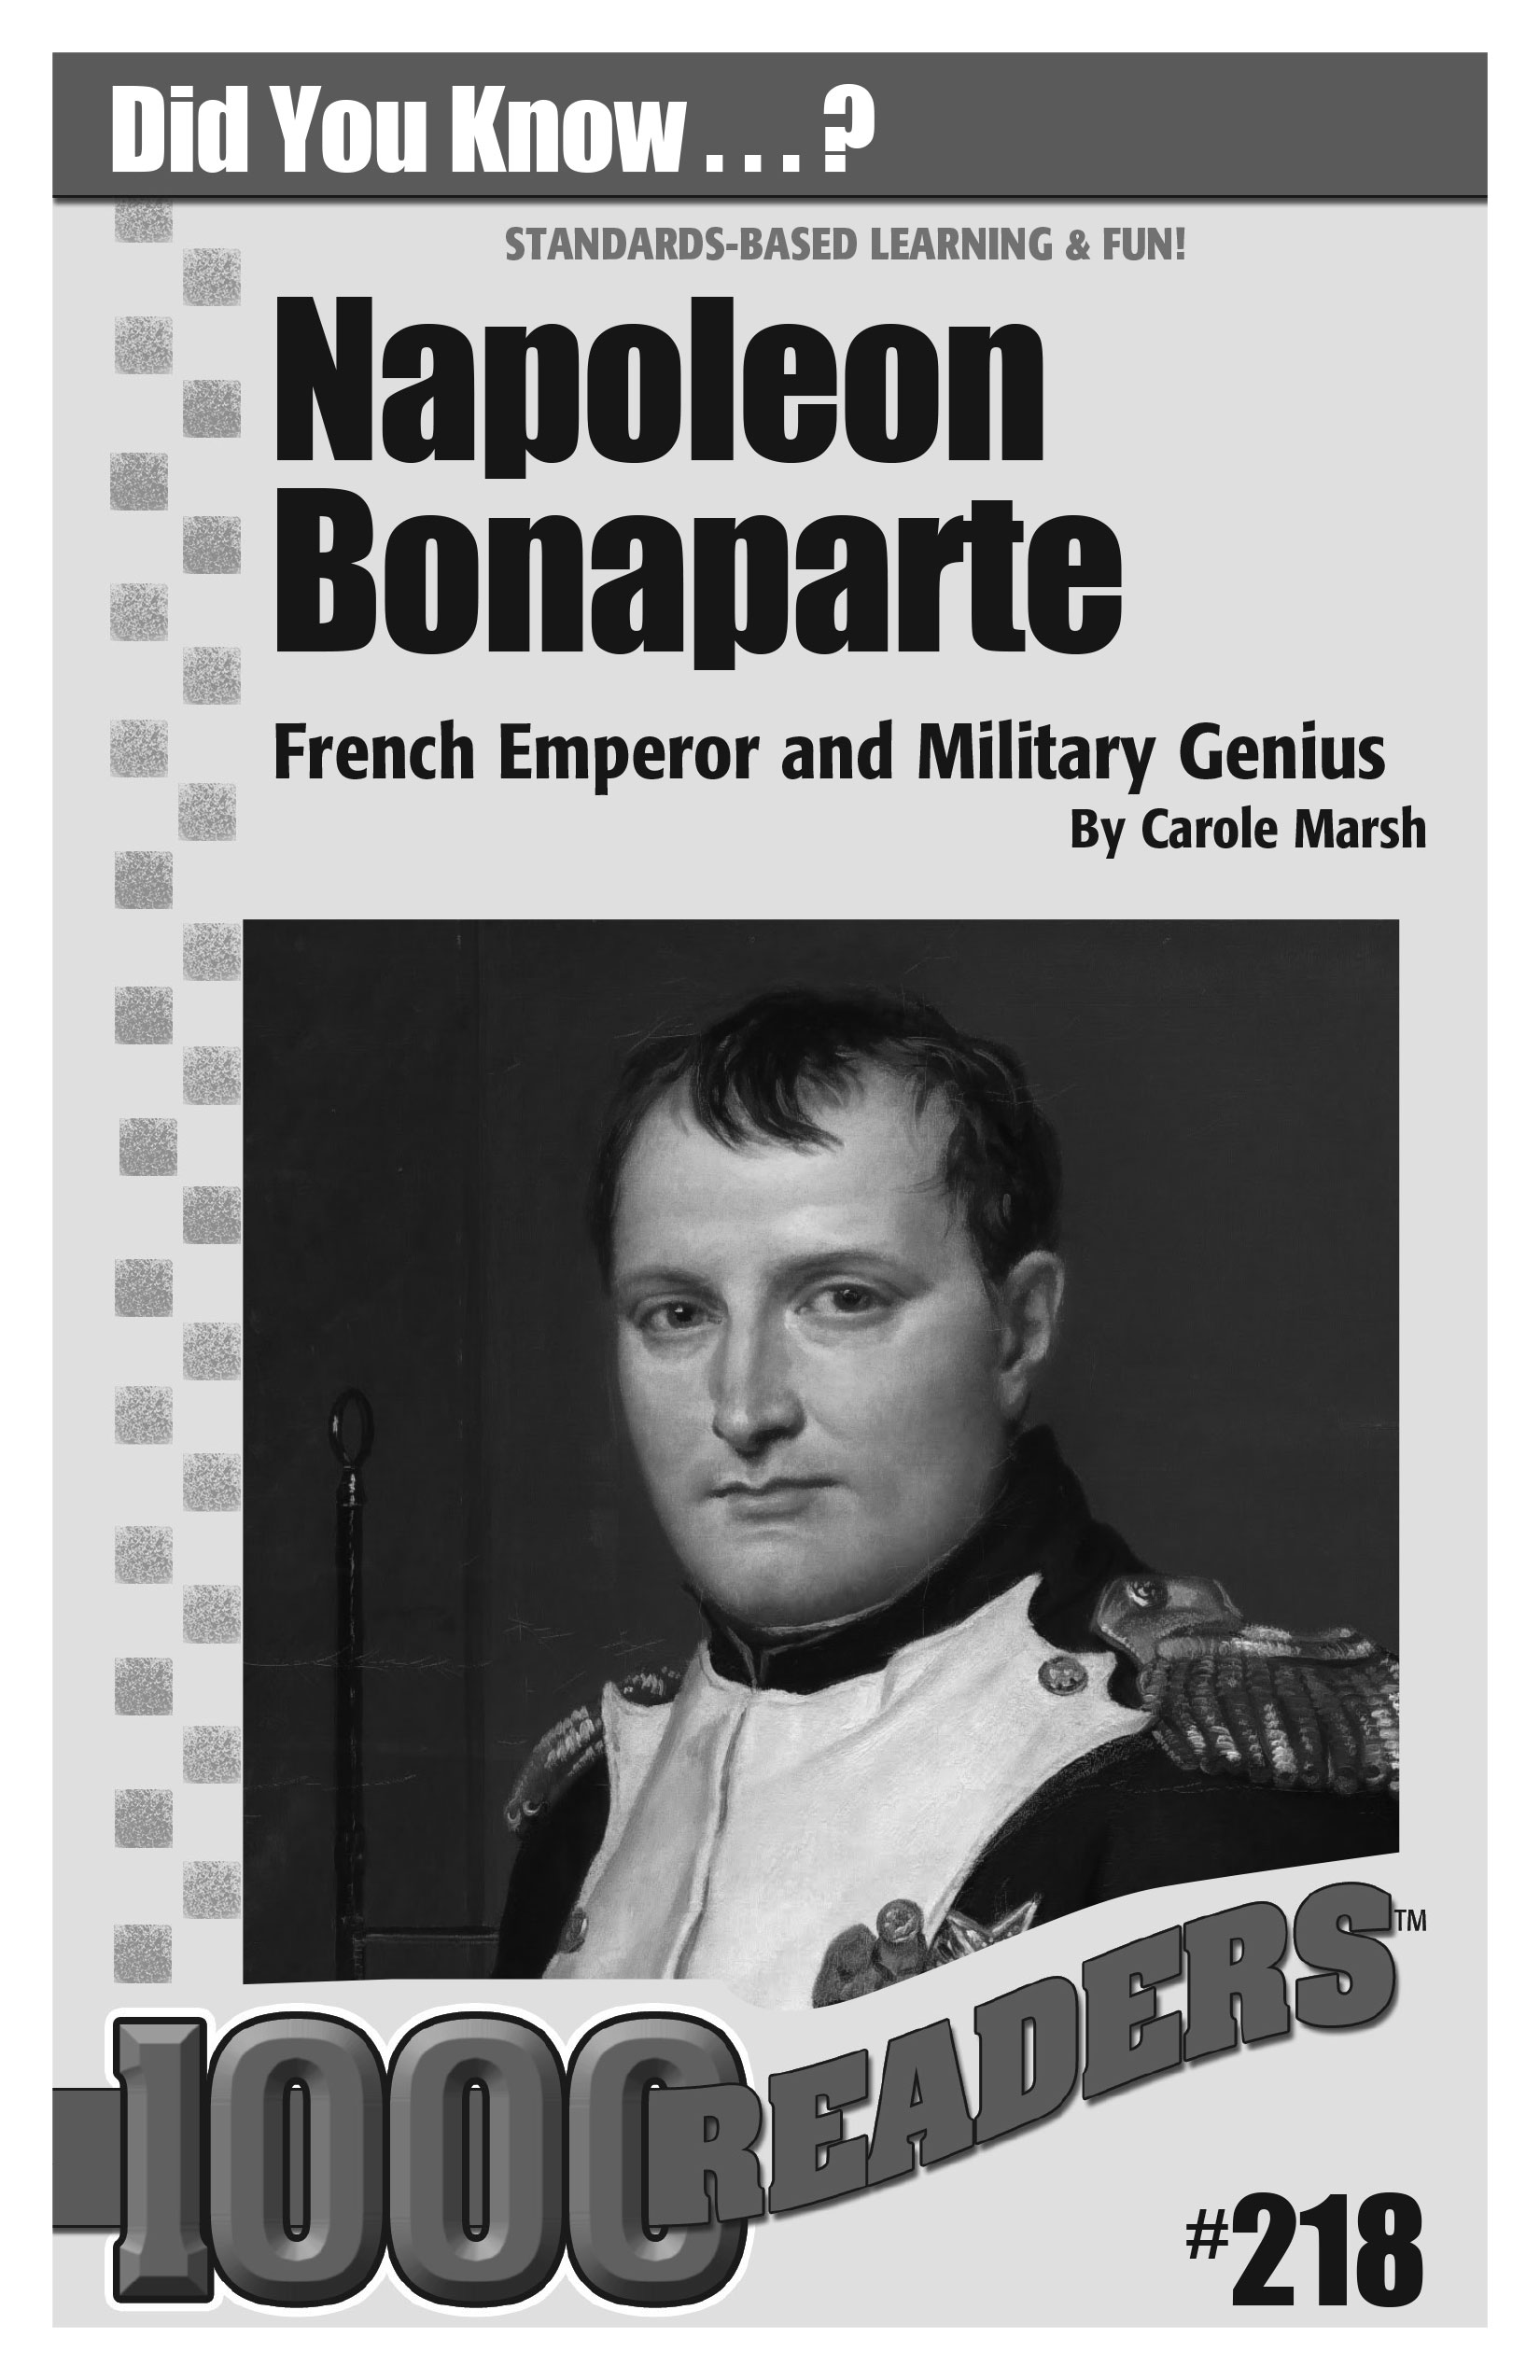 Napoleon Bonaparte: French Emperor and Military Genius